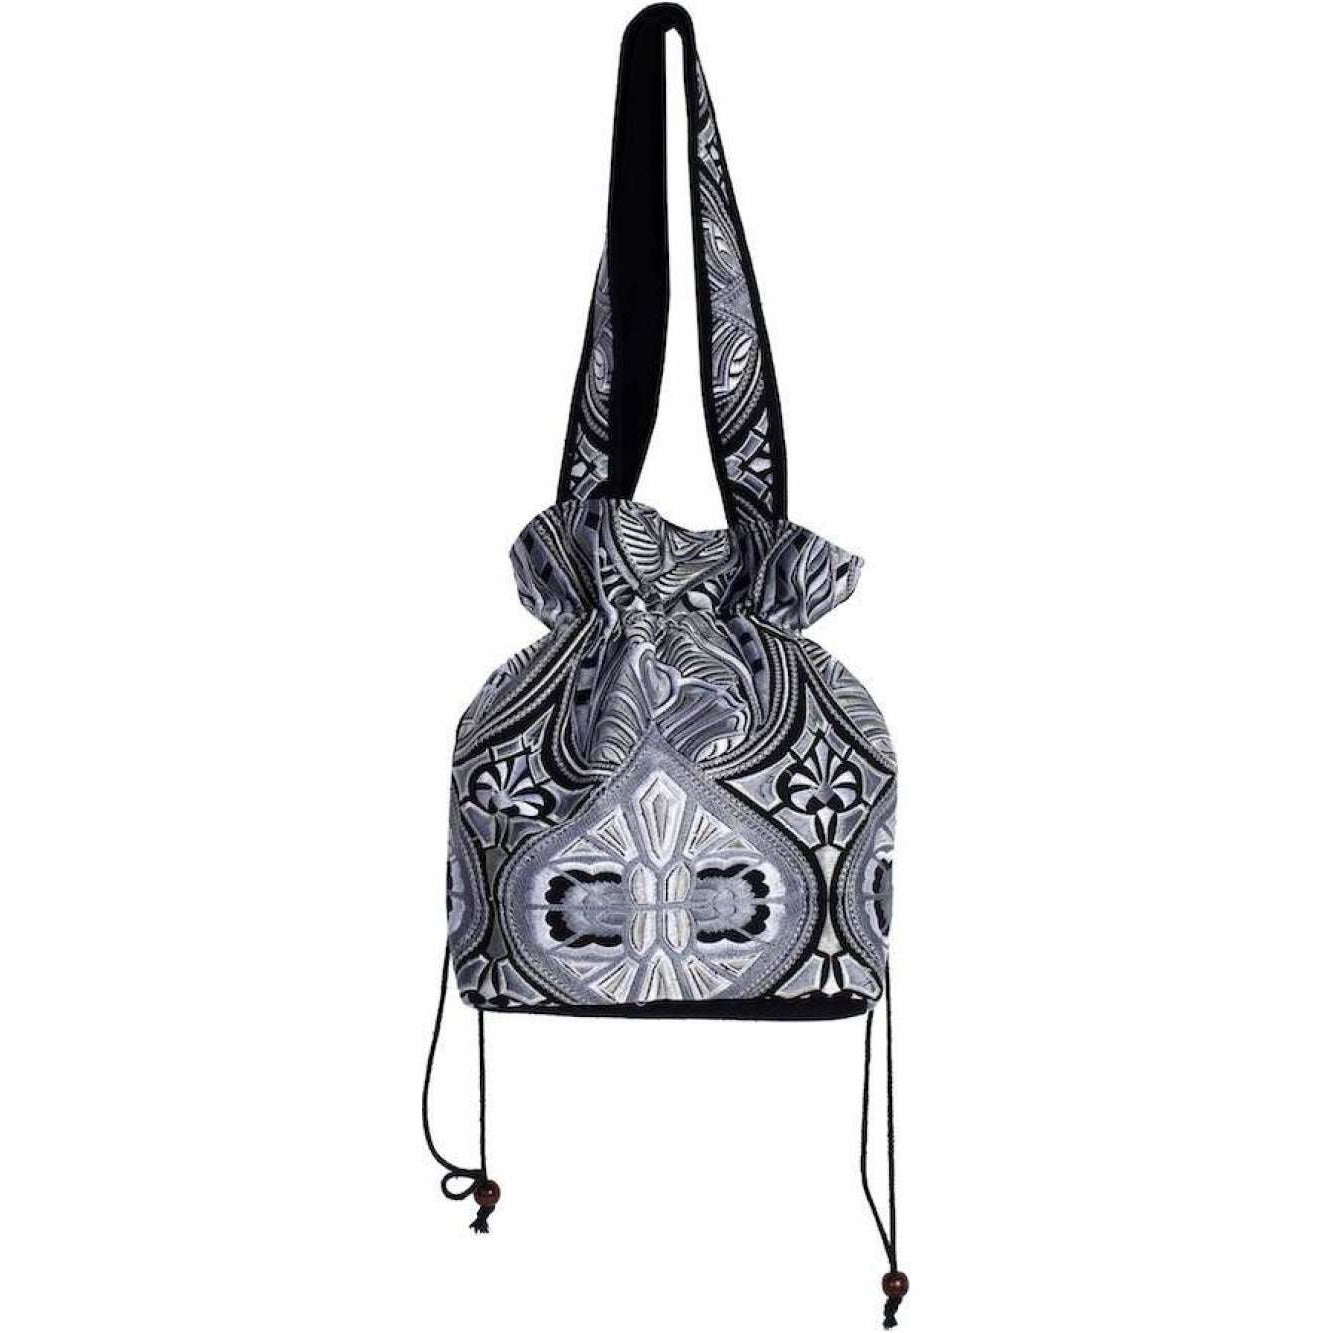 Handcrafted Tribal Black and White Shoulder Bag with Drawstring